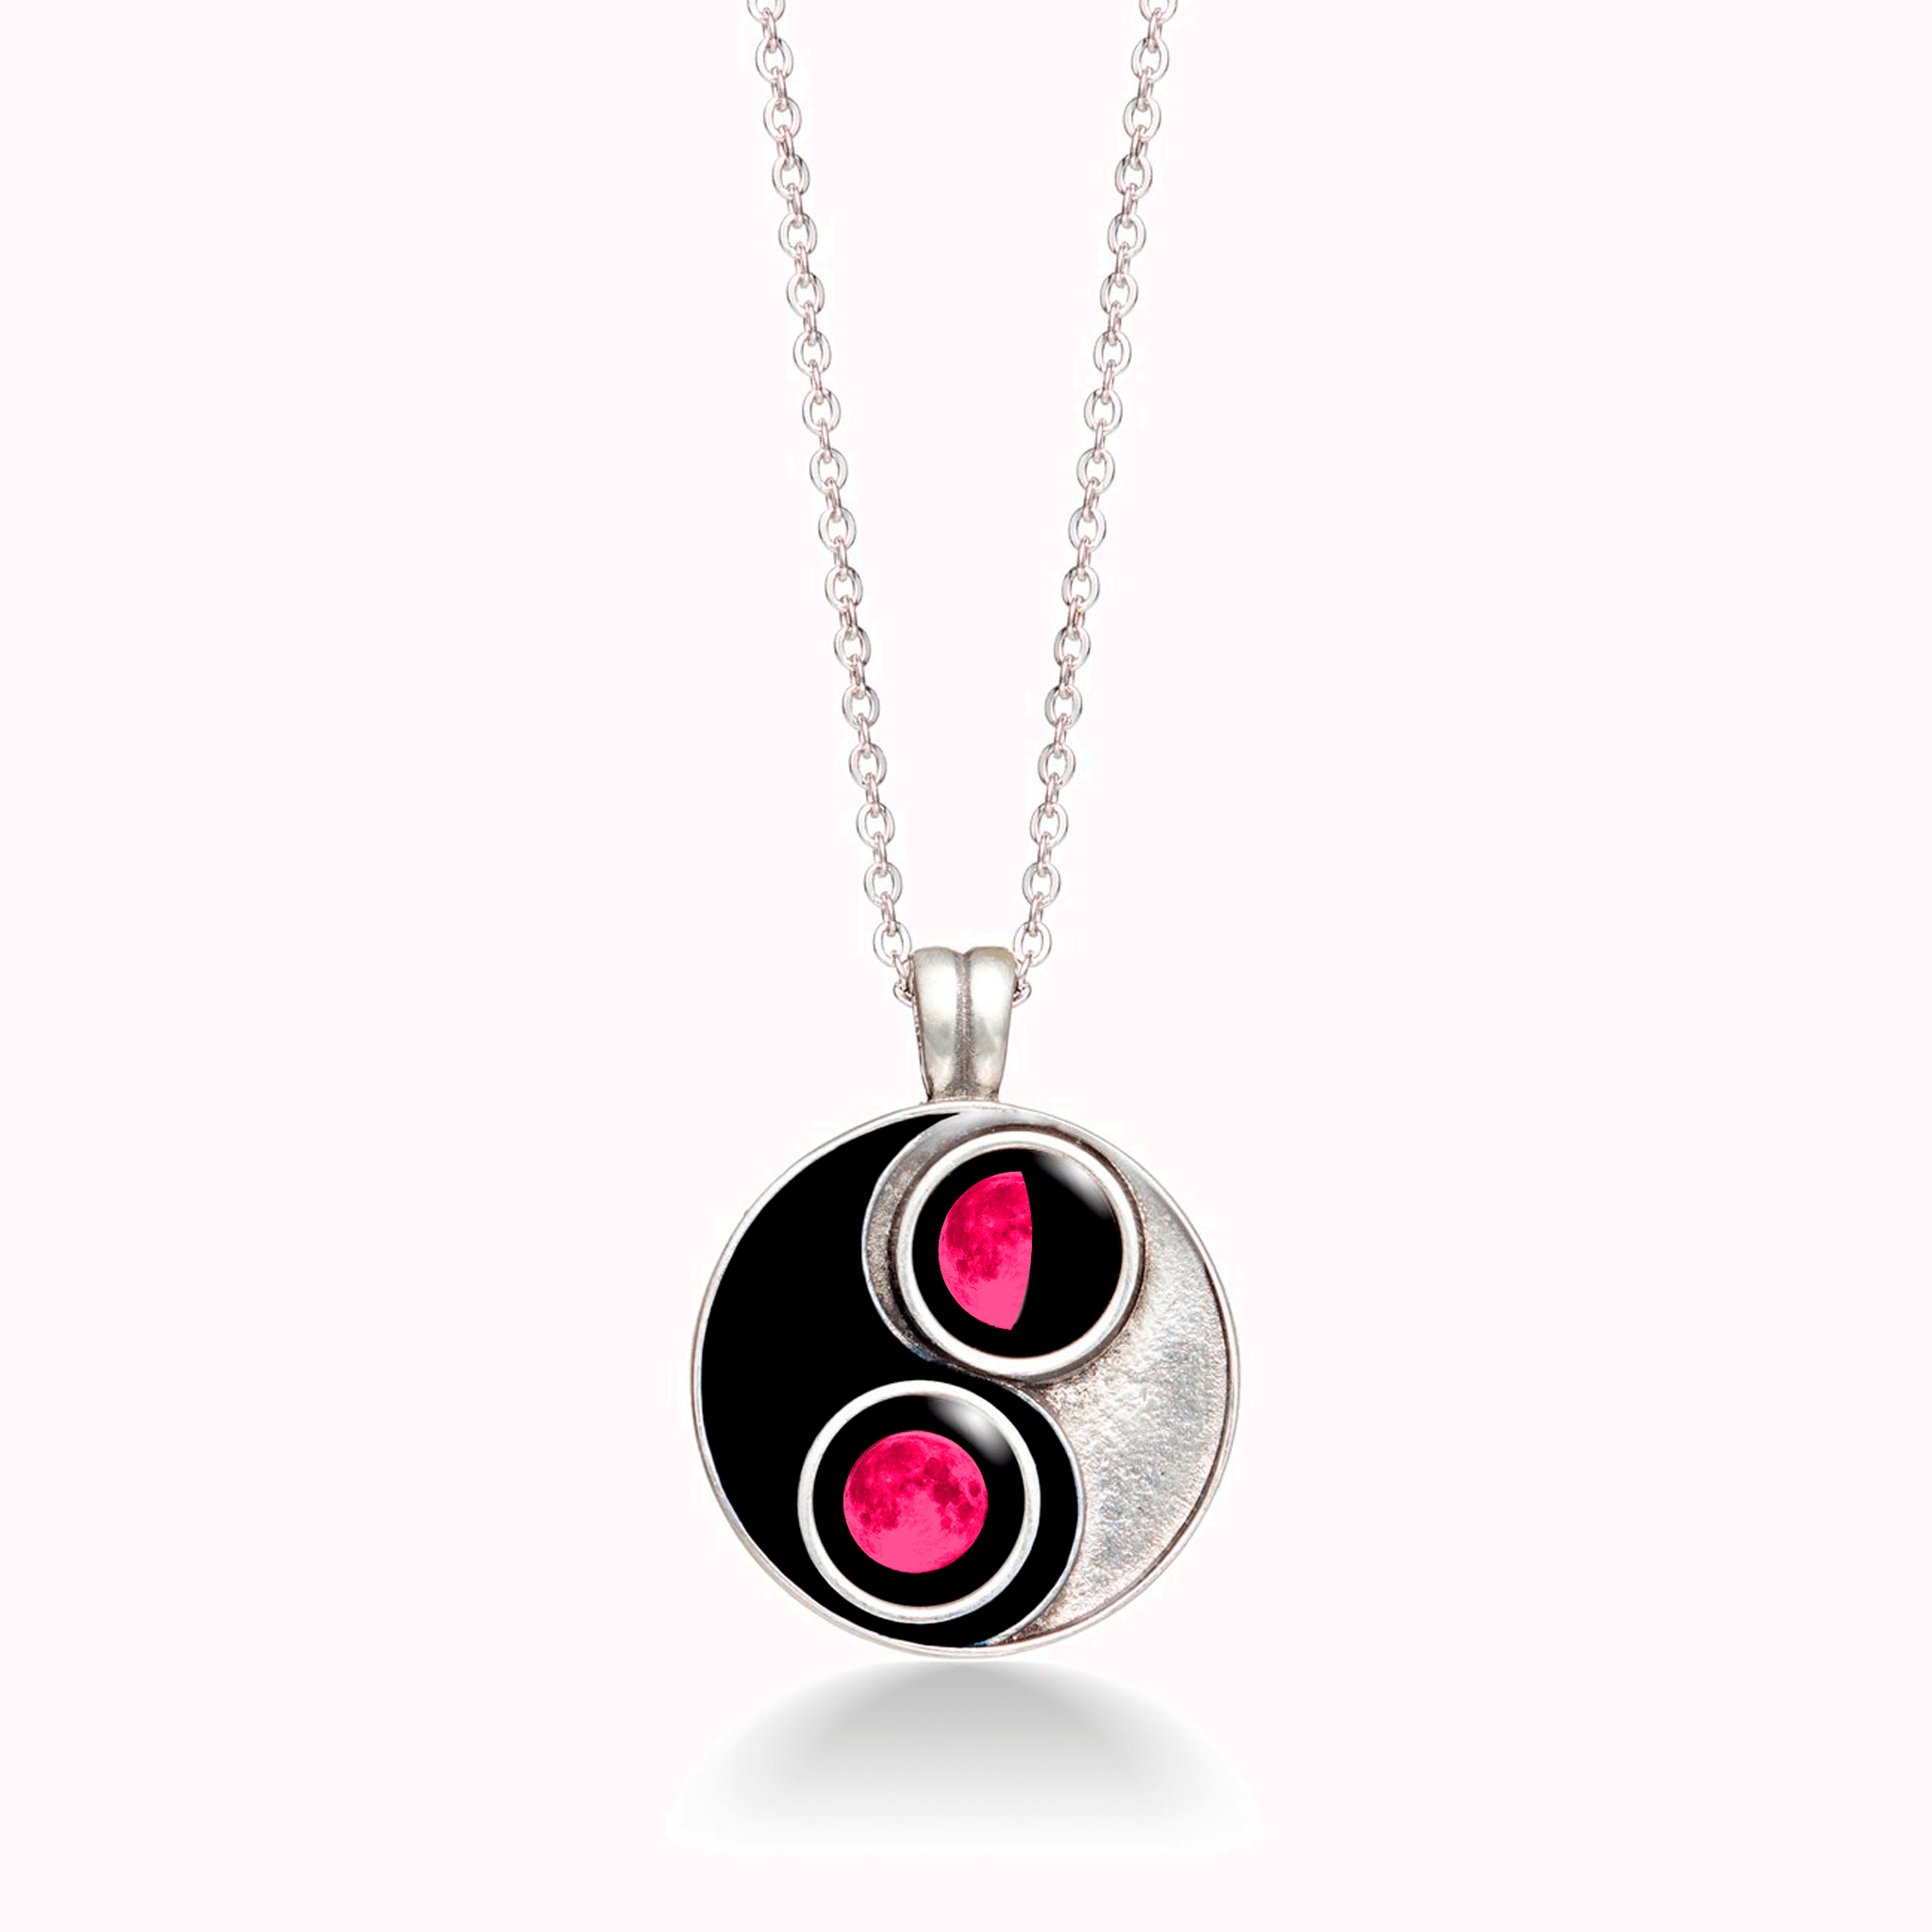 Pink Moon Midnight Taijitu Necklace in Black